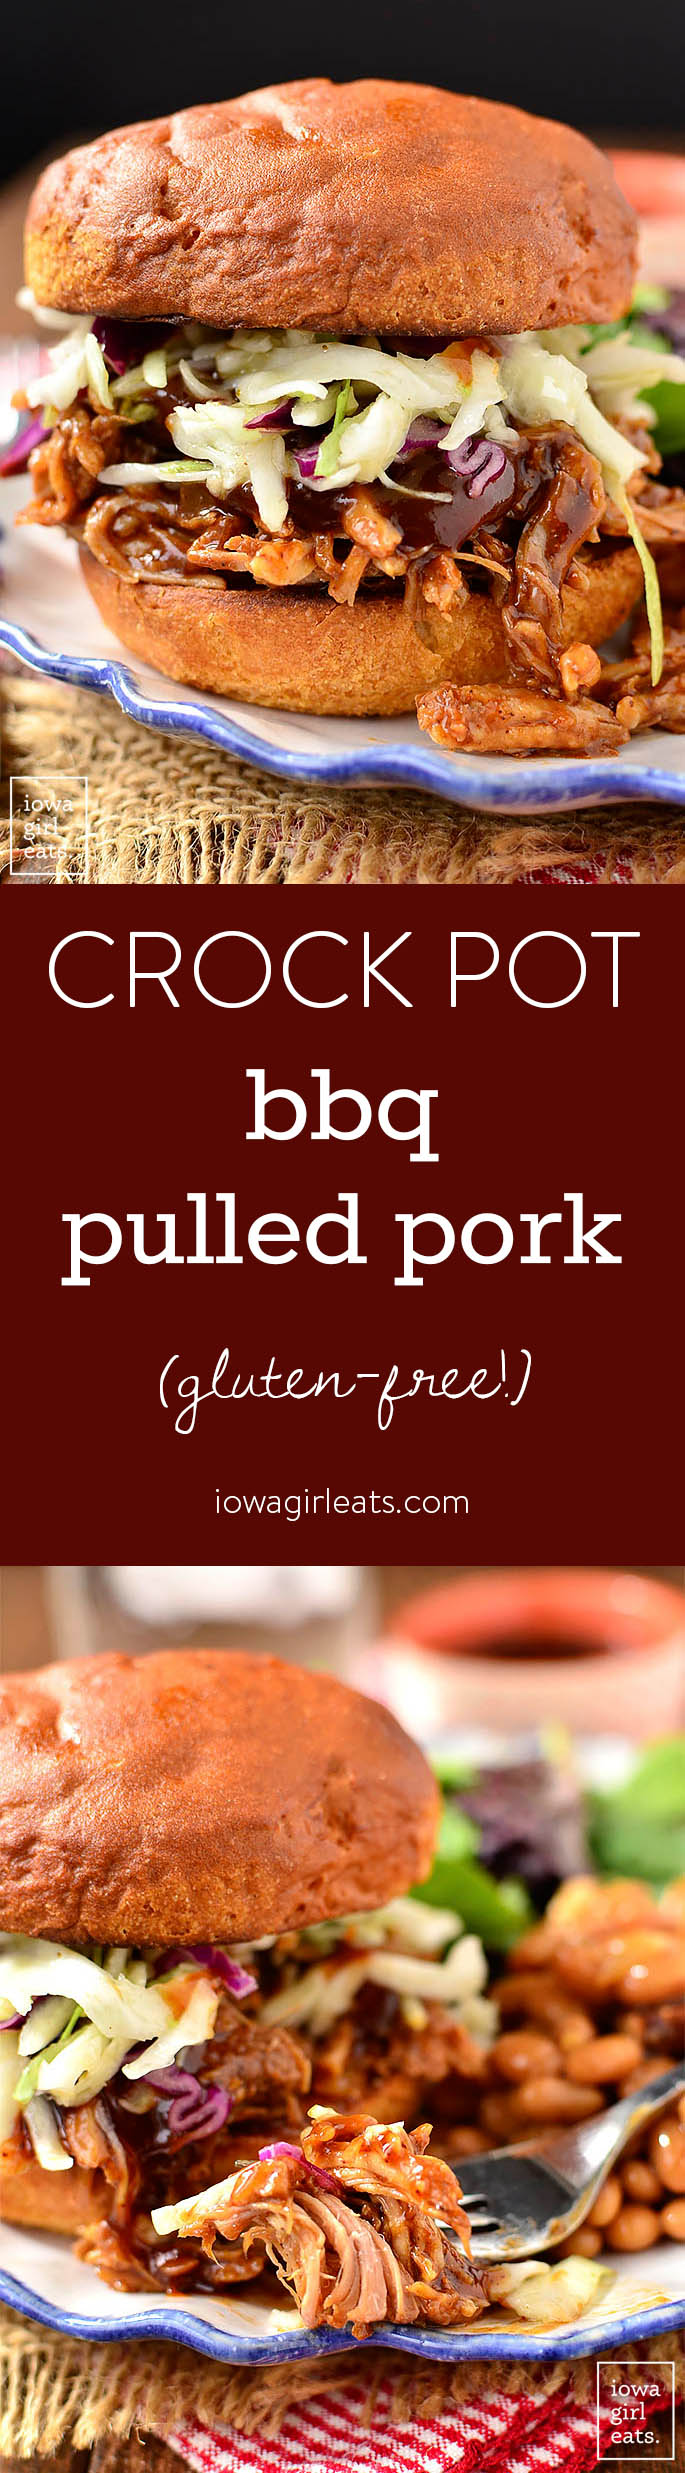 Crock Pot BBQ Pulled Pork is a 5-ingredient, long-cooking crock pot recipe that couldn't be simpler. Use the pulled pork in sandwiches, or for nachos, salads, and wraps! | iowagirleats.com